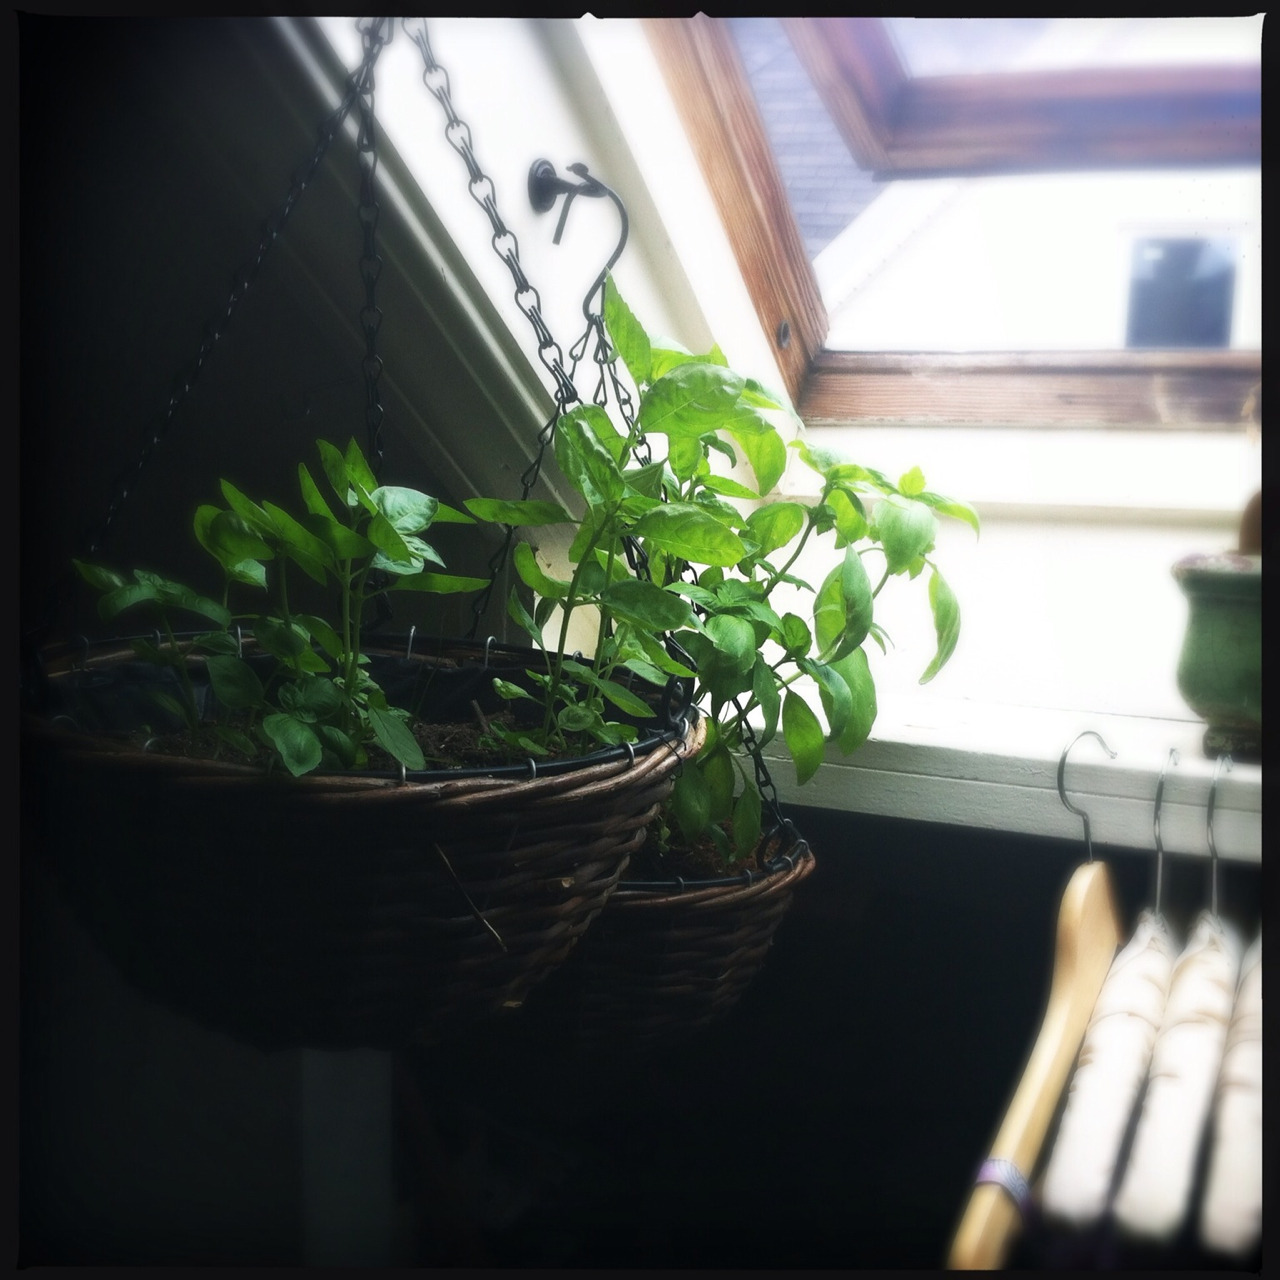 This skylight is helping me keep my basil alive! Now I just need mint growing and this will help my bar.